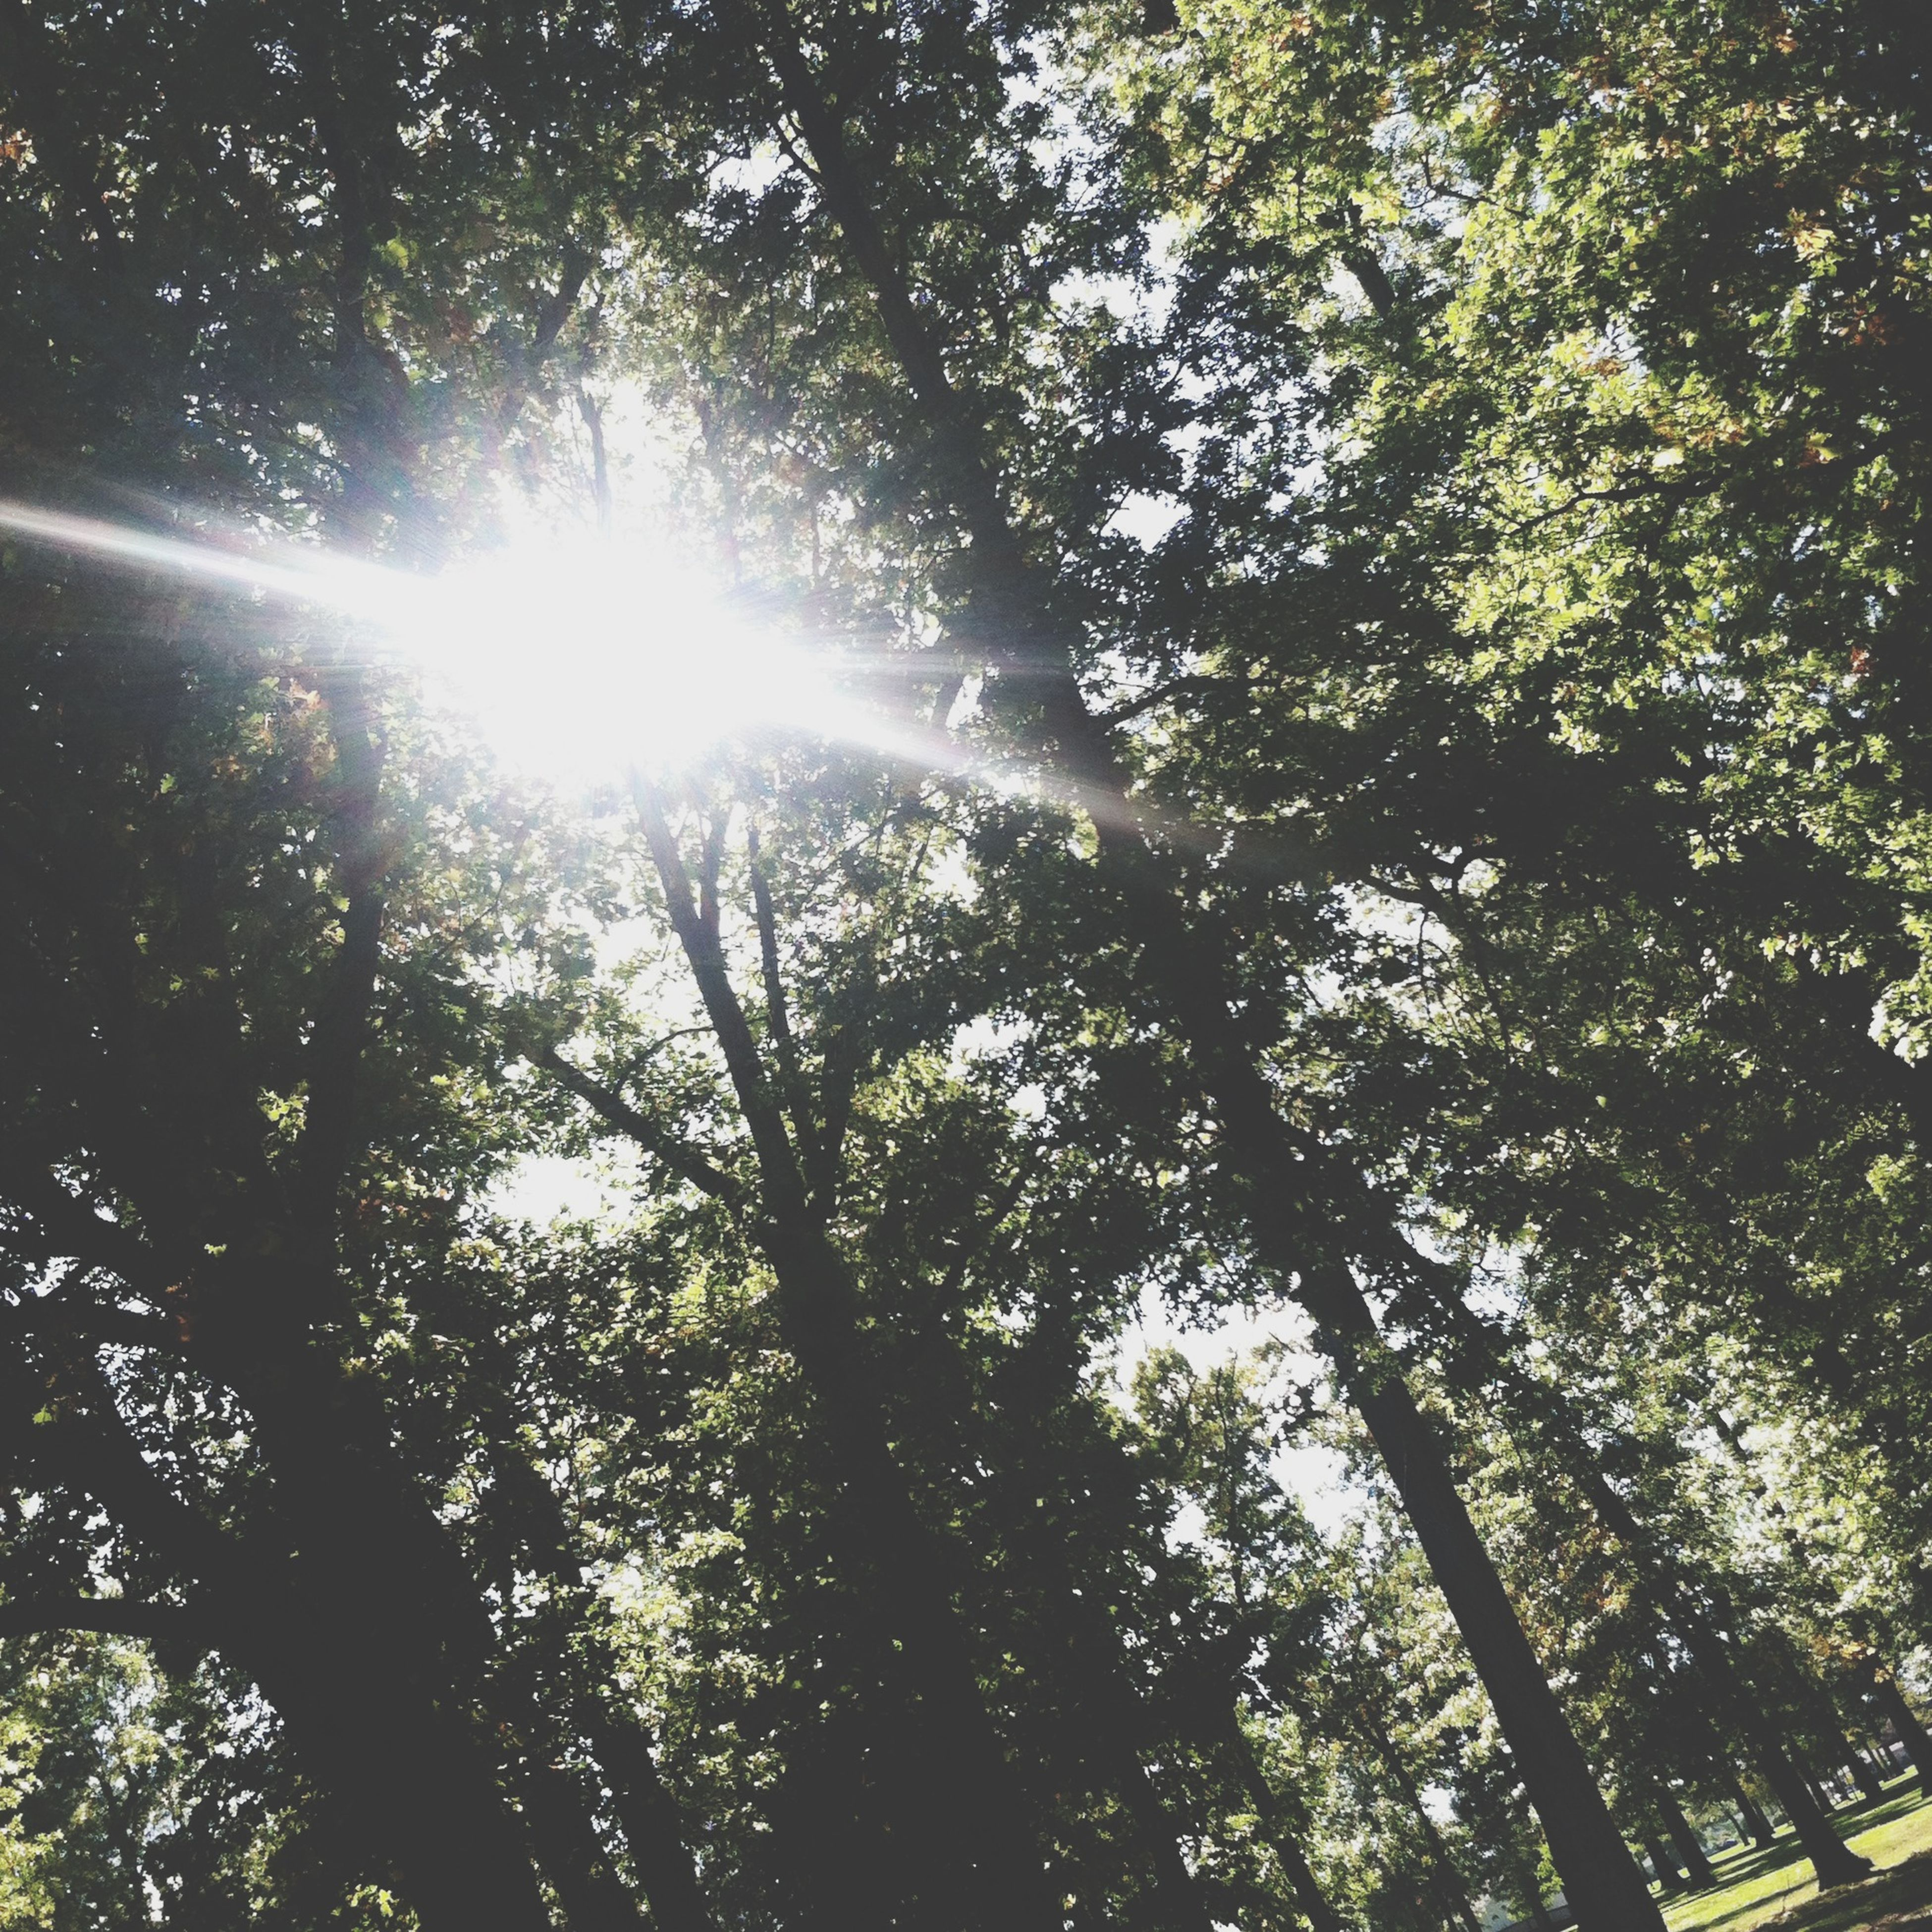 tree, low angle view, sun, growth, branch, sunbeam, sunlight, nature, lens flare, tranquility, beauty in nature, sky, forest, day, outdoors, no people, directly below, backgrounds, streaming, full frame